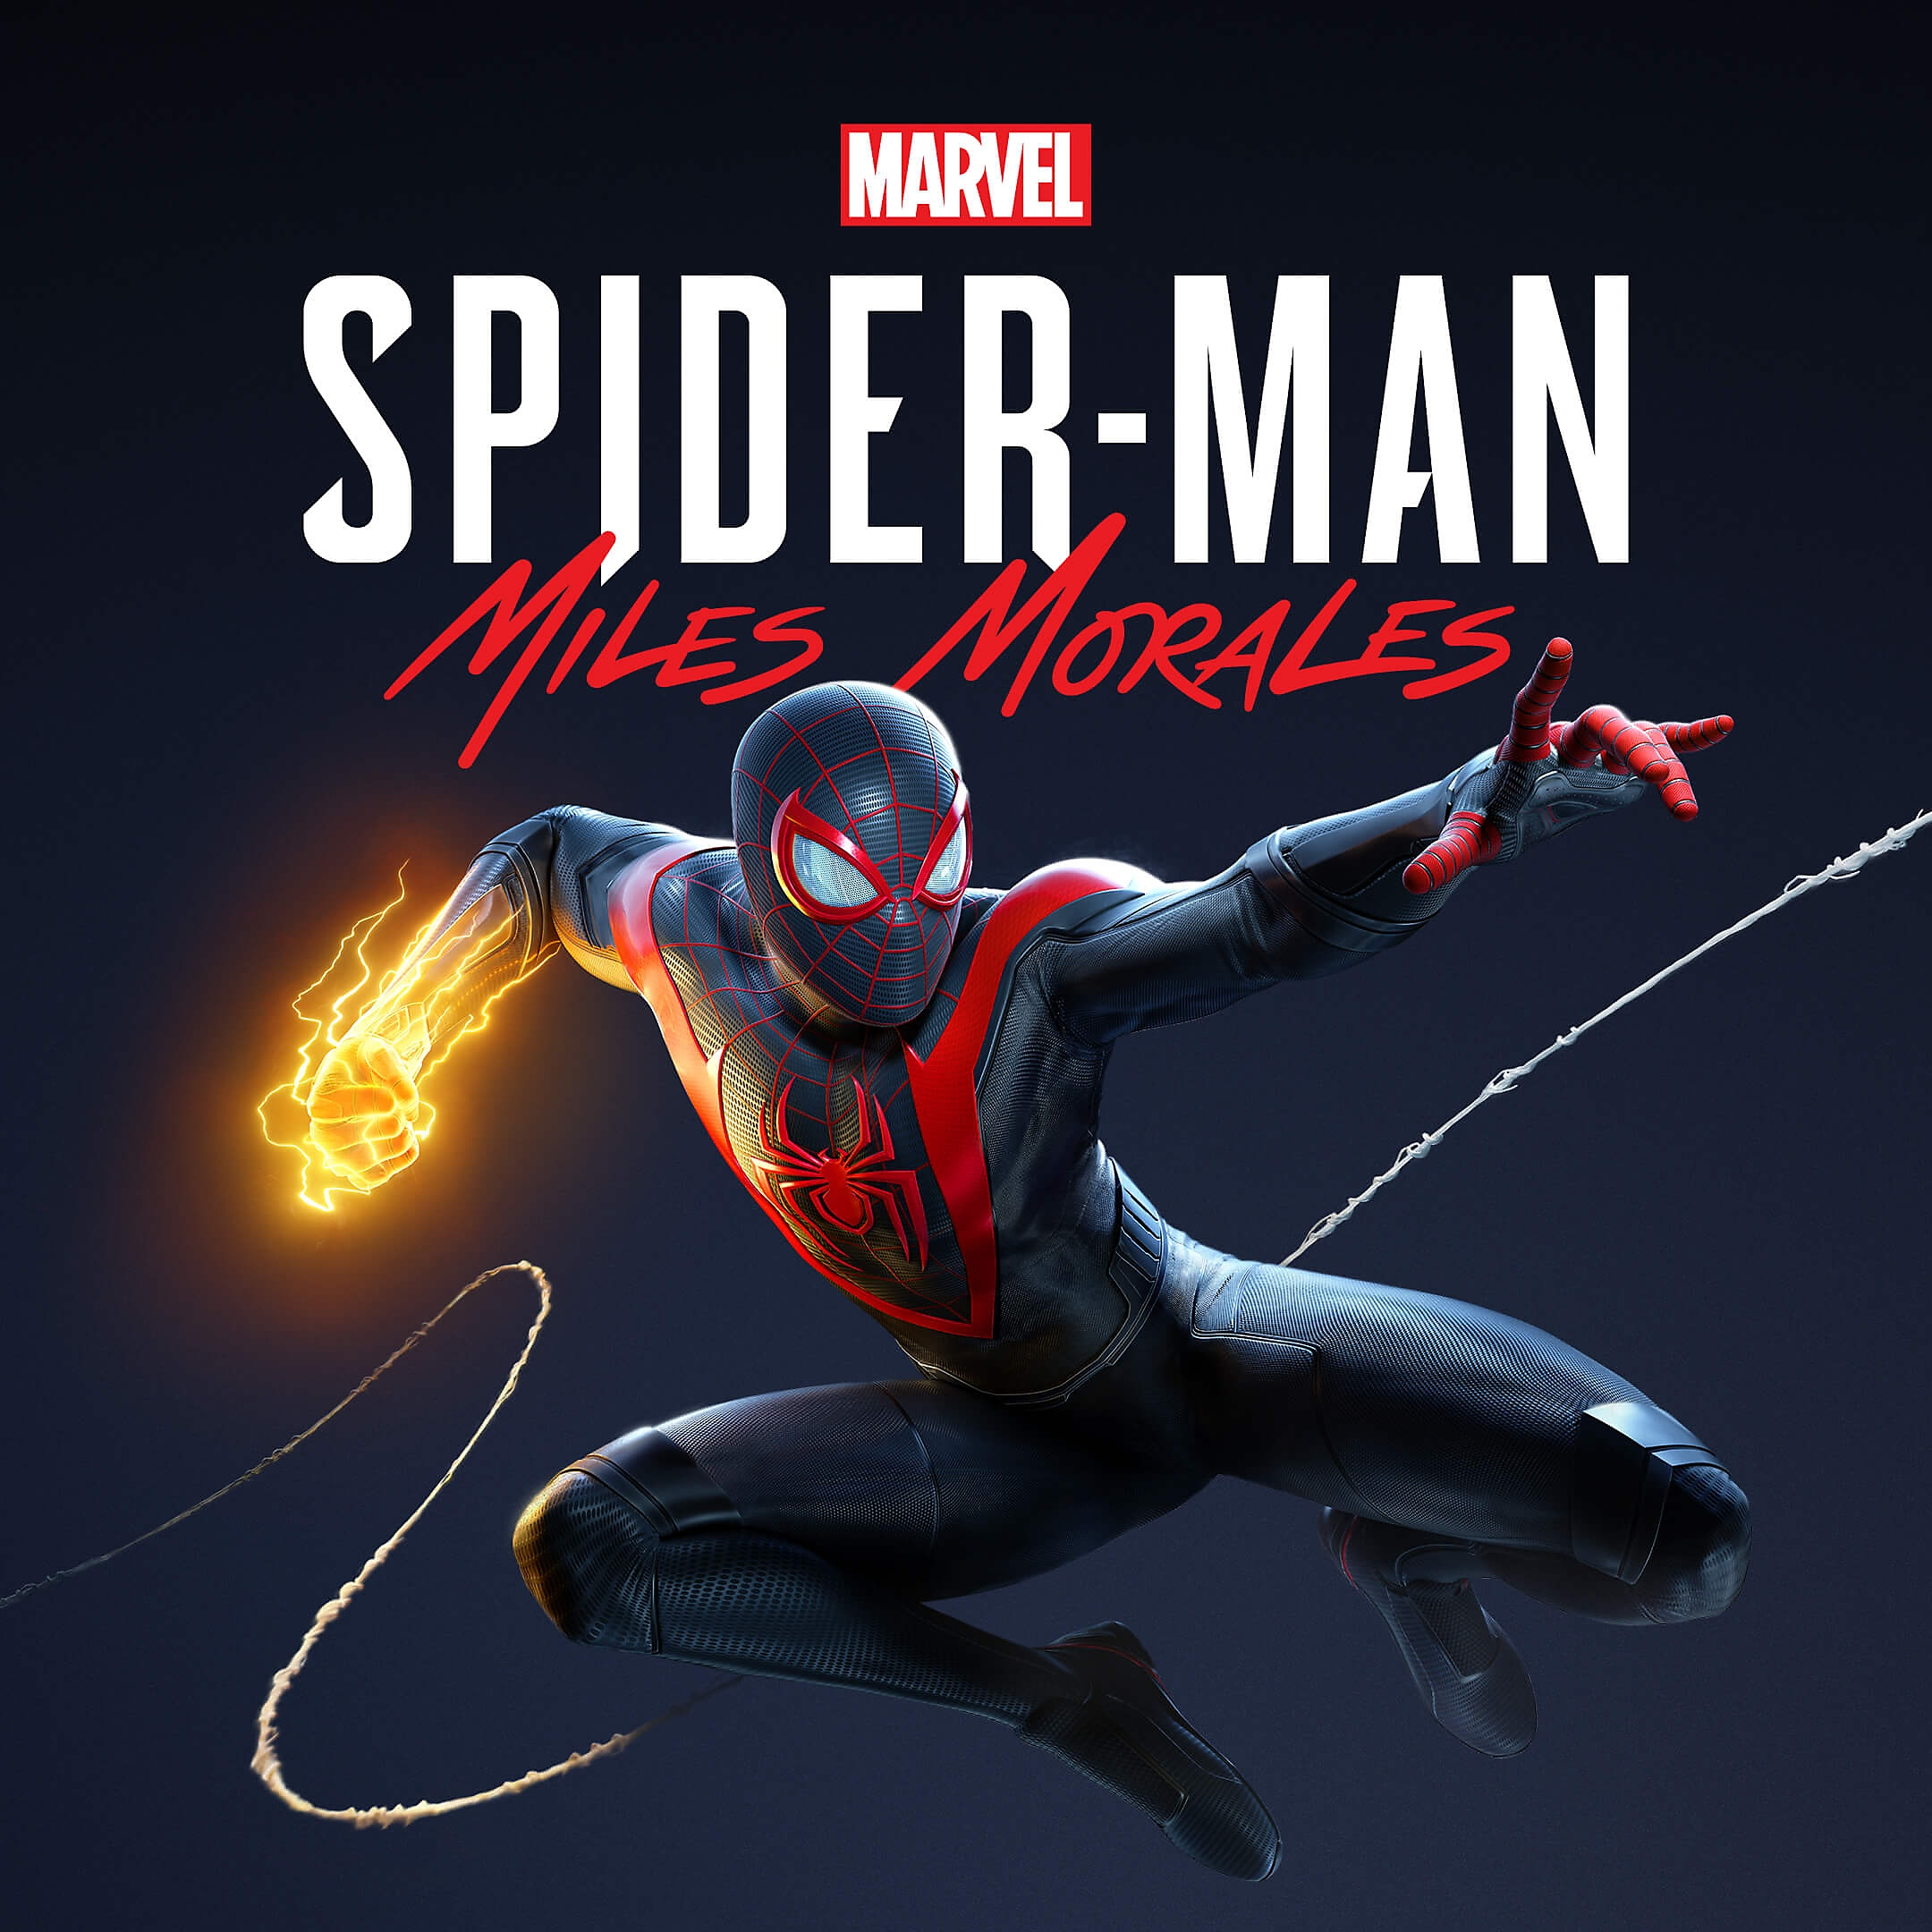 Marvel's Spider-Man Miles Morales - Store Art